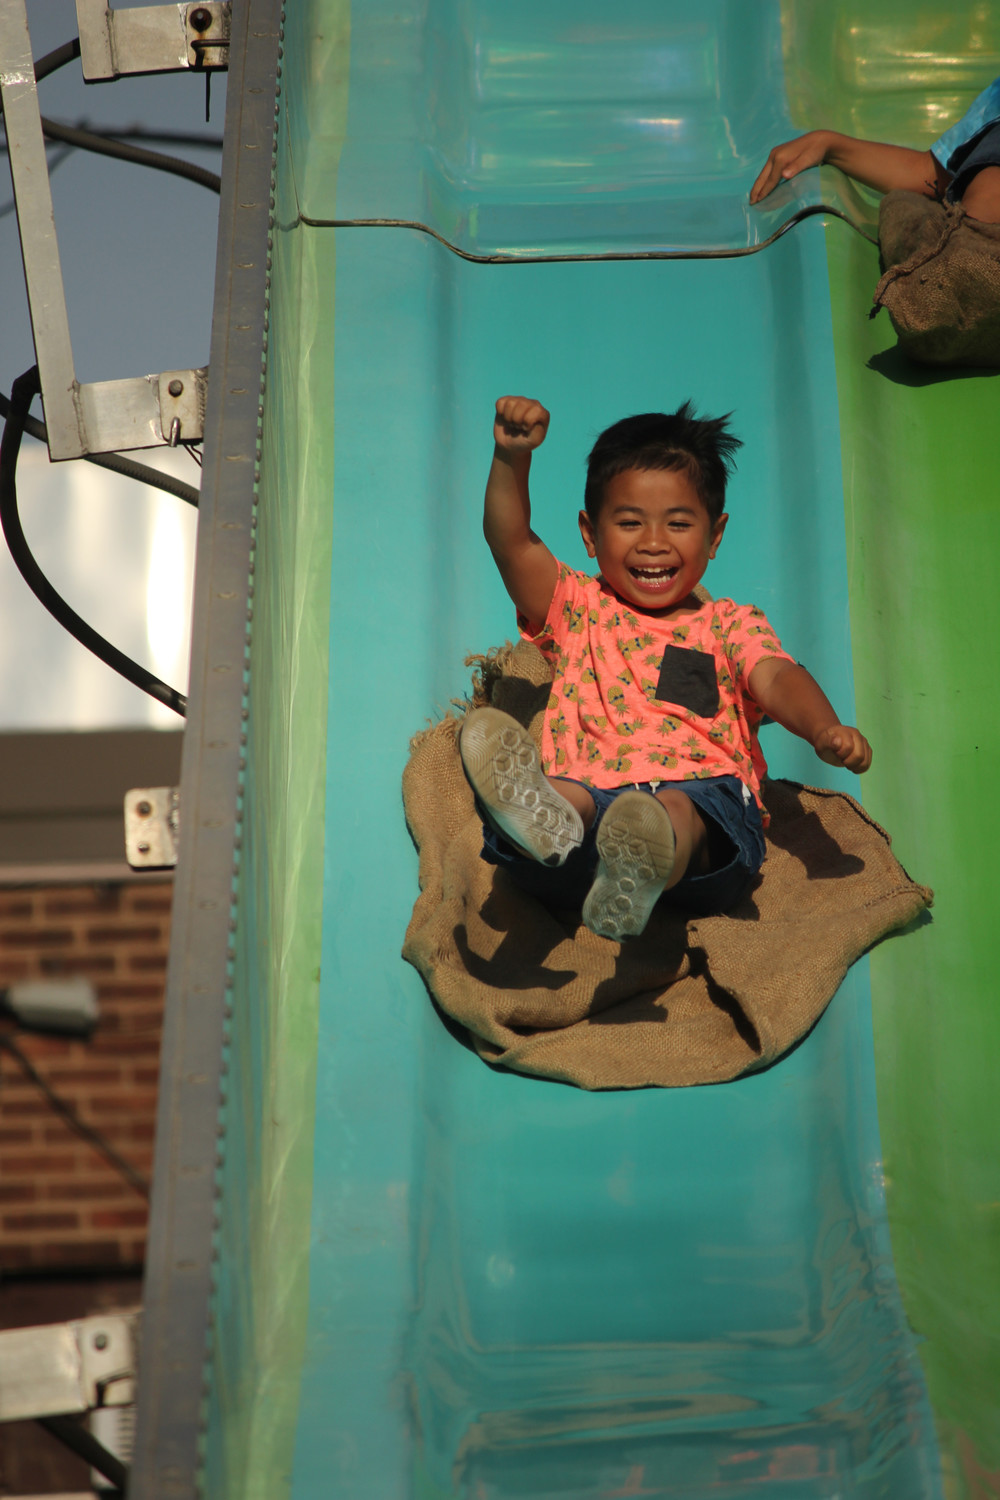 Five-year-old Nikolas Dagan had a blast on the slide.